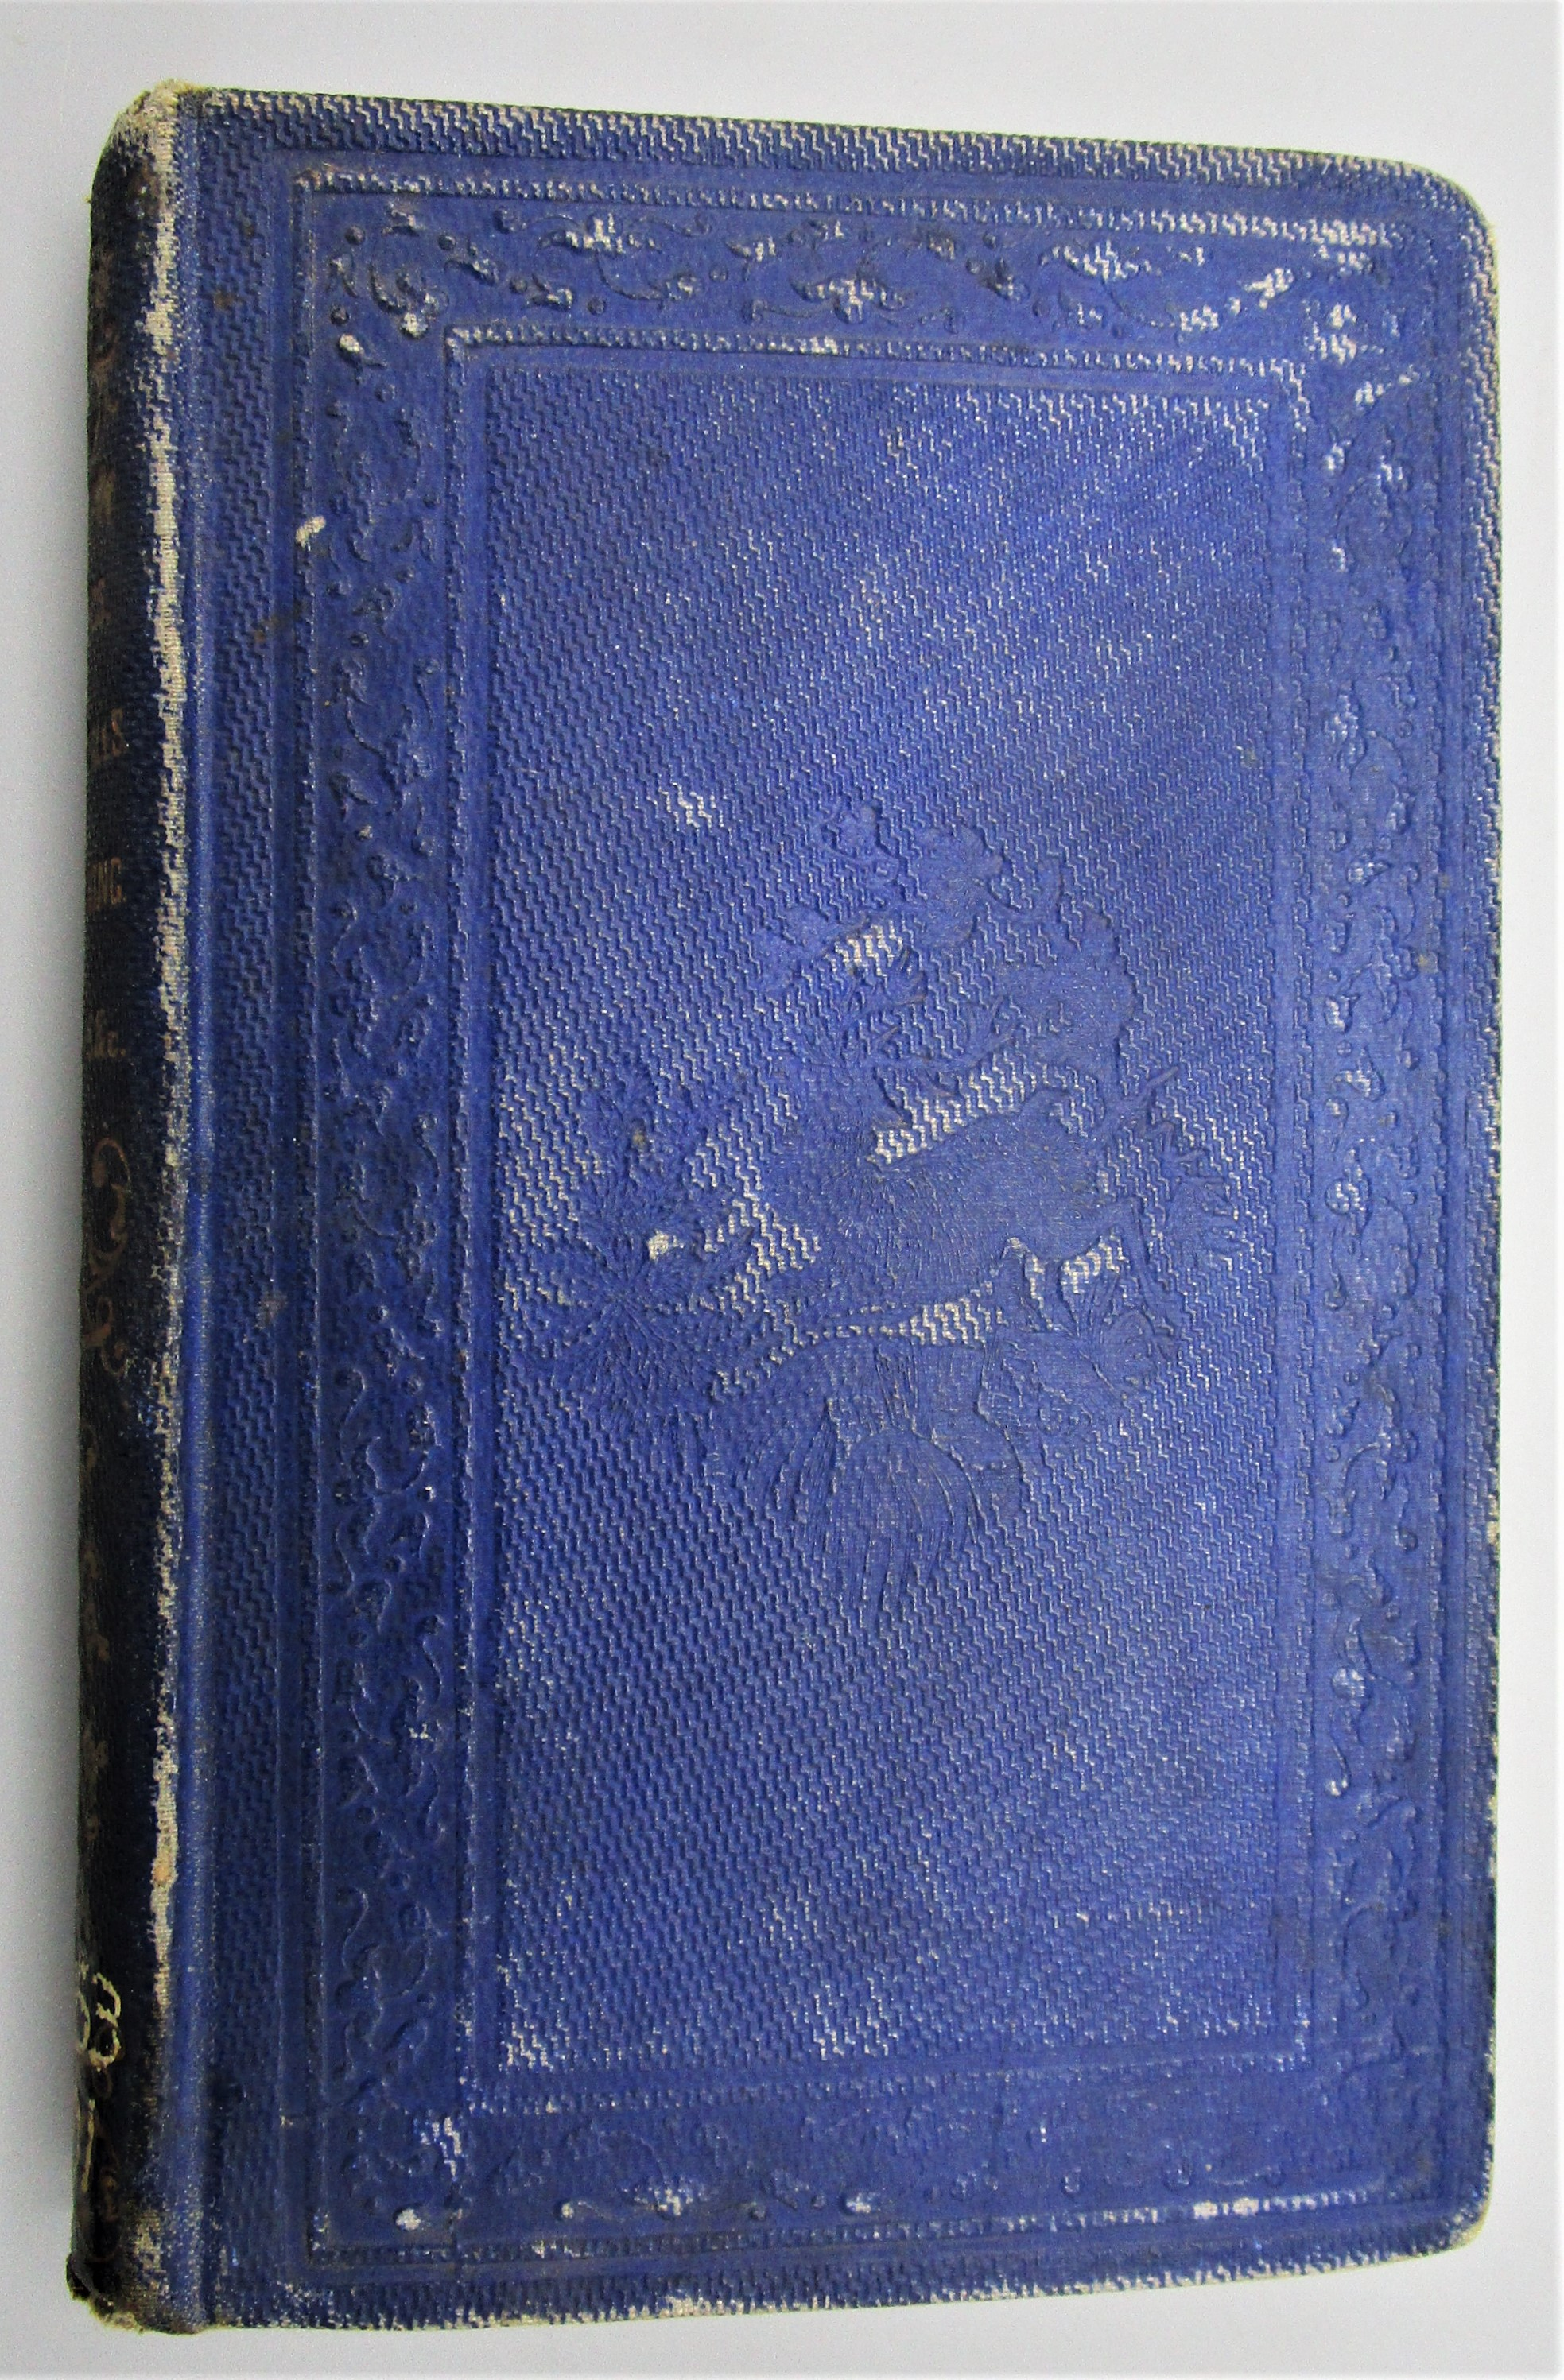 SPRINGS, WATERFALLS, SEA-BATHING RESORTS, AN MOUNTAIN SCENERY OF THE US & CANADA - 1855